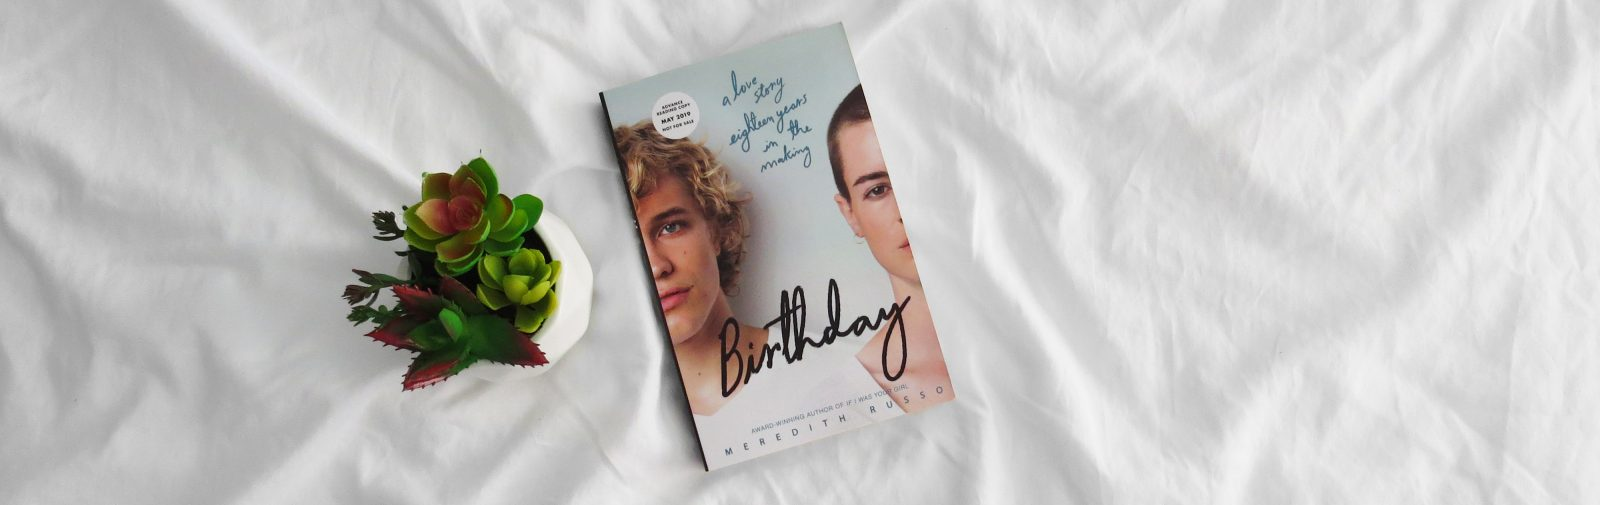 Blog Tour | Birthday by Meredith Russo Review